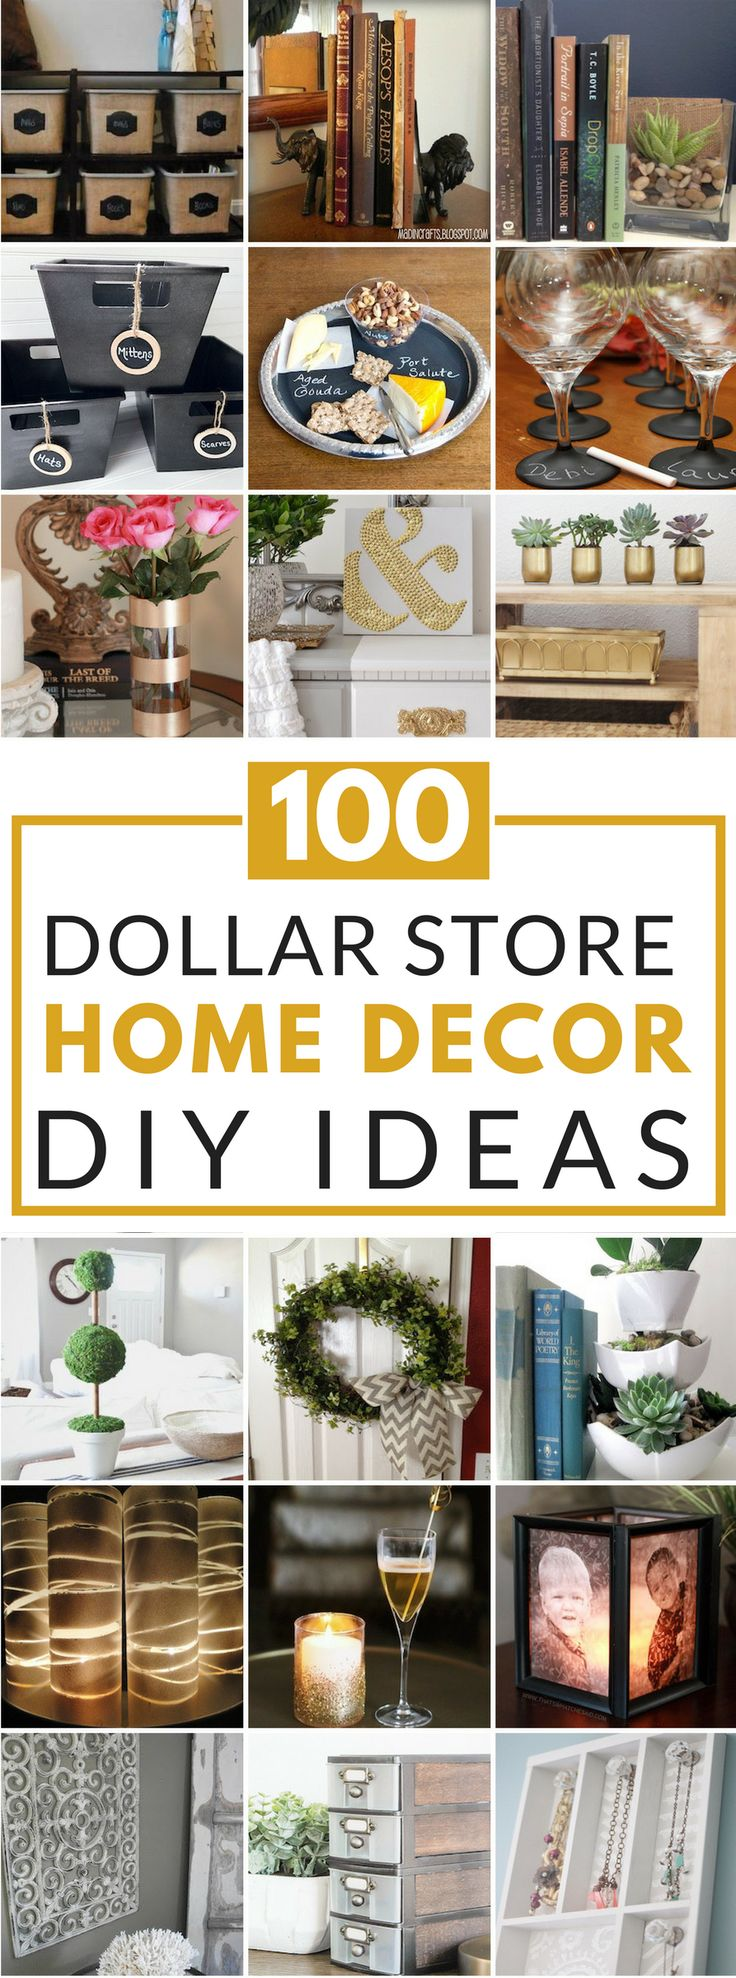 25 best ideas about Dollar tree decor on Pinterest